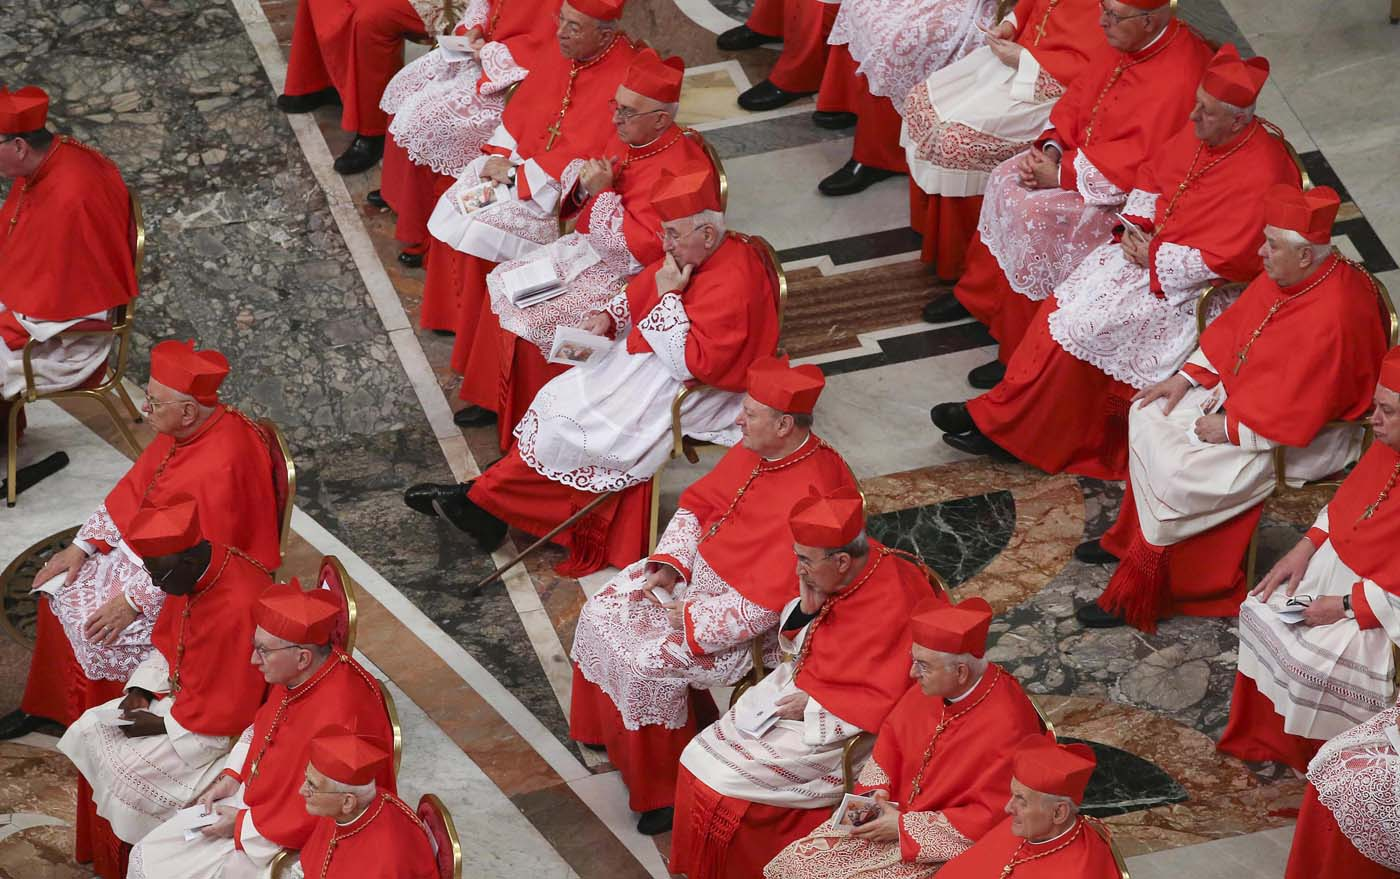 ALT109. Vatican City (Vatican City State (holy See)), 19/11/2016.- Cardinals during the Consistory ceremony at the St. Peter's Basilica in Vatican, 19 November 2016. Pope Francis has named 17 new cardinals, 13 of them under age 80 and thus eligible to vote in a conclave to elect his successor. (Papa) EFE/EPA/STEFANO RELLANDINI/POOL